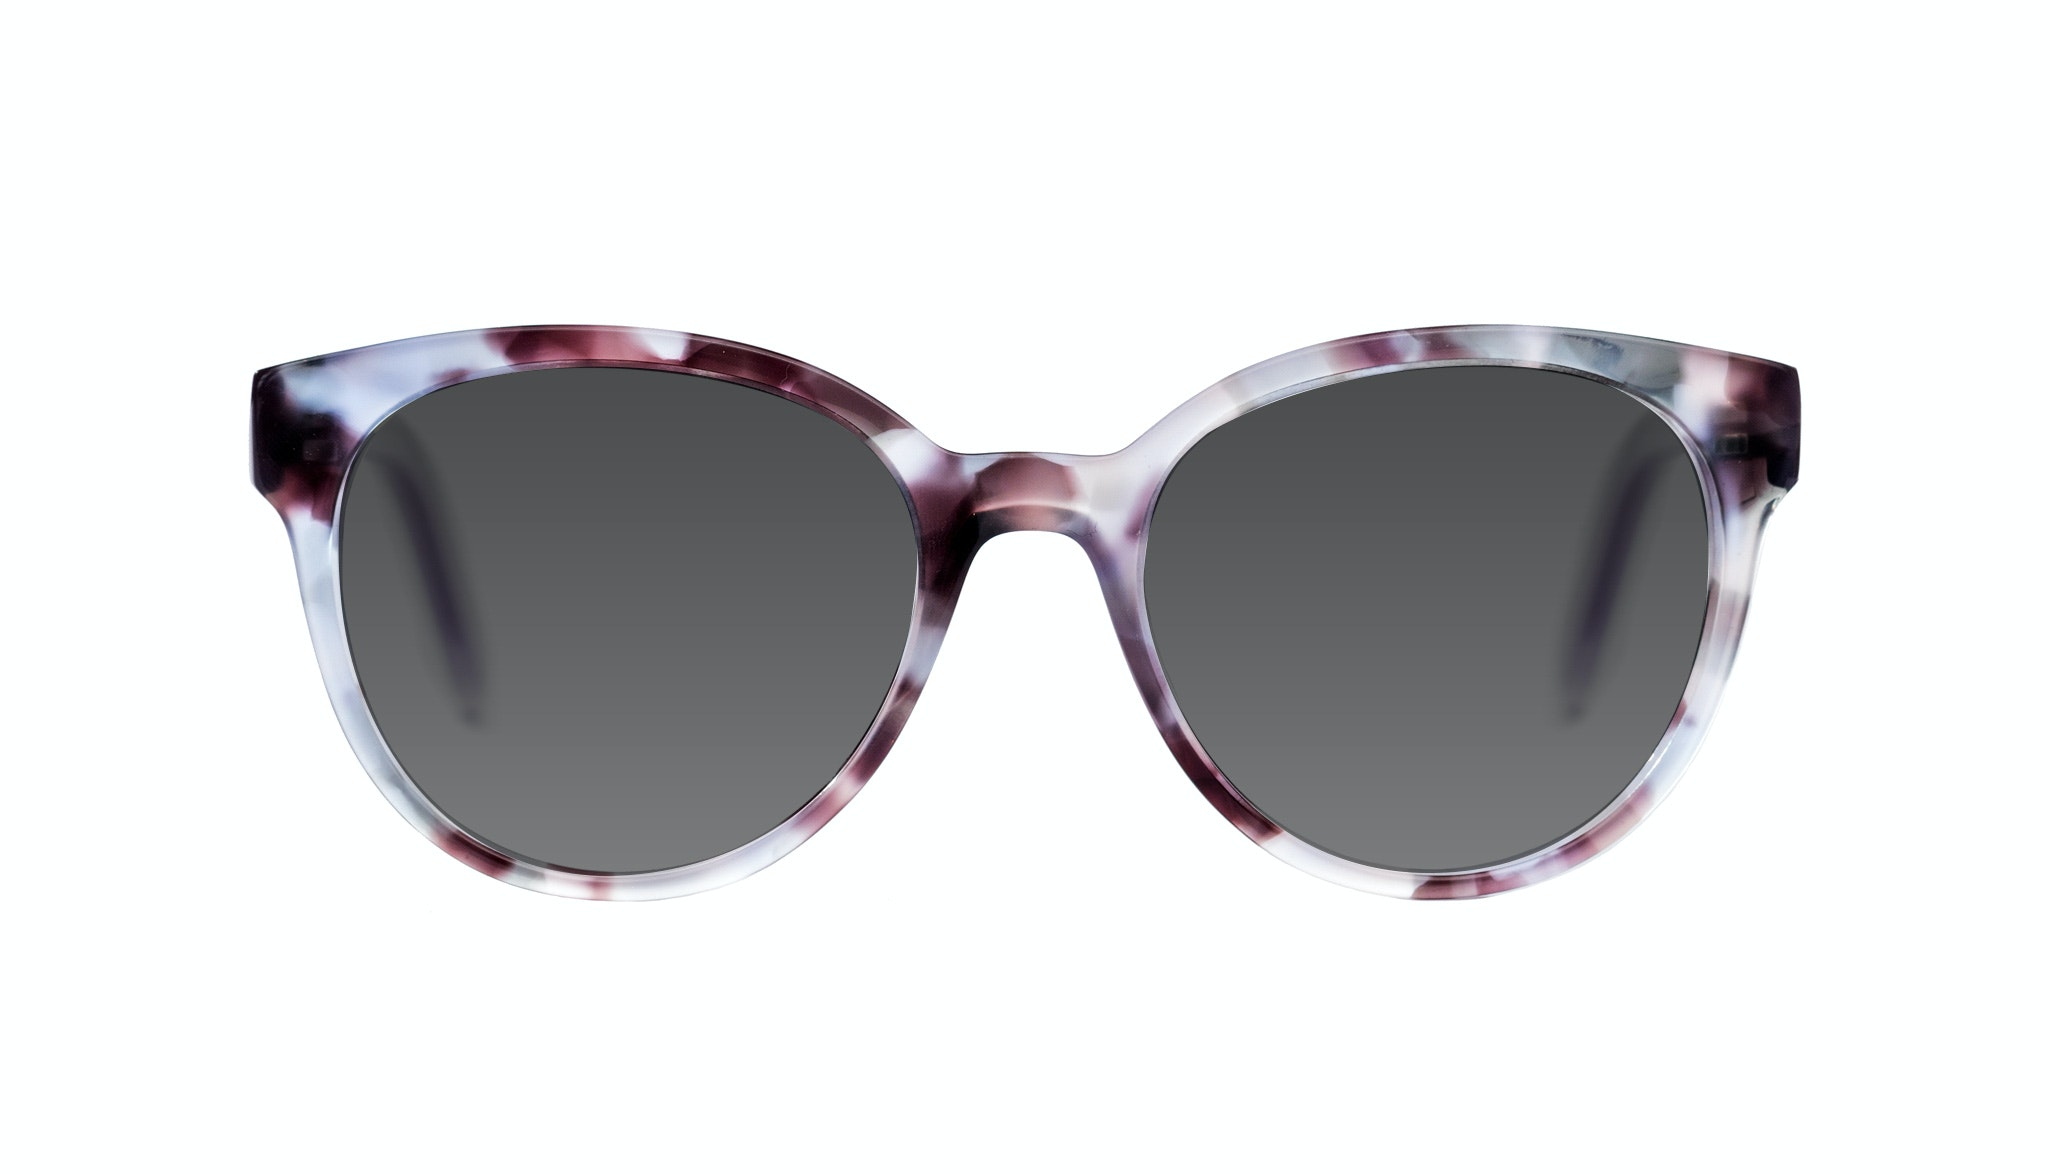 Affordable Fashion Glasses Round Sunglasses Women Eclipse Lilac Tort Front